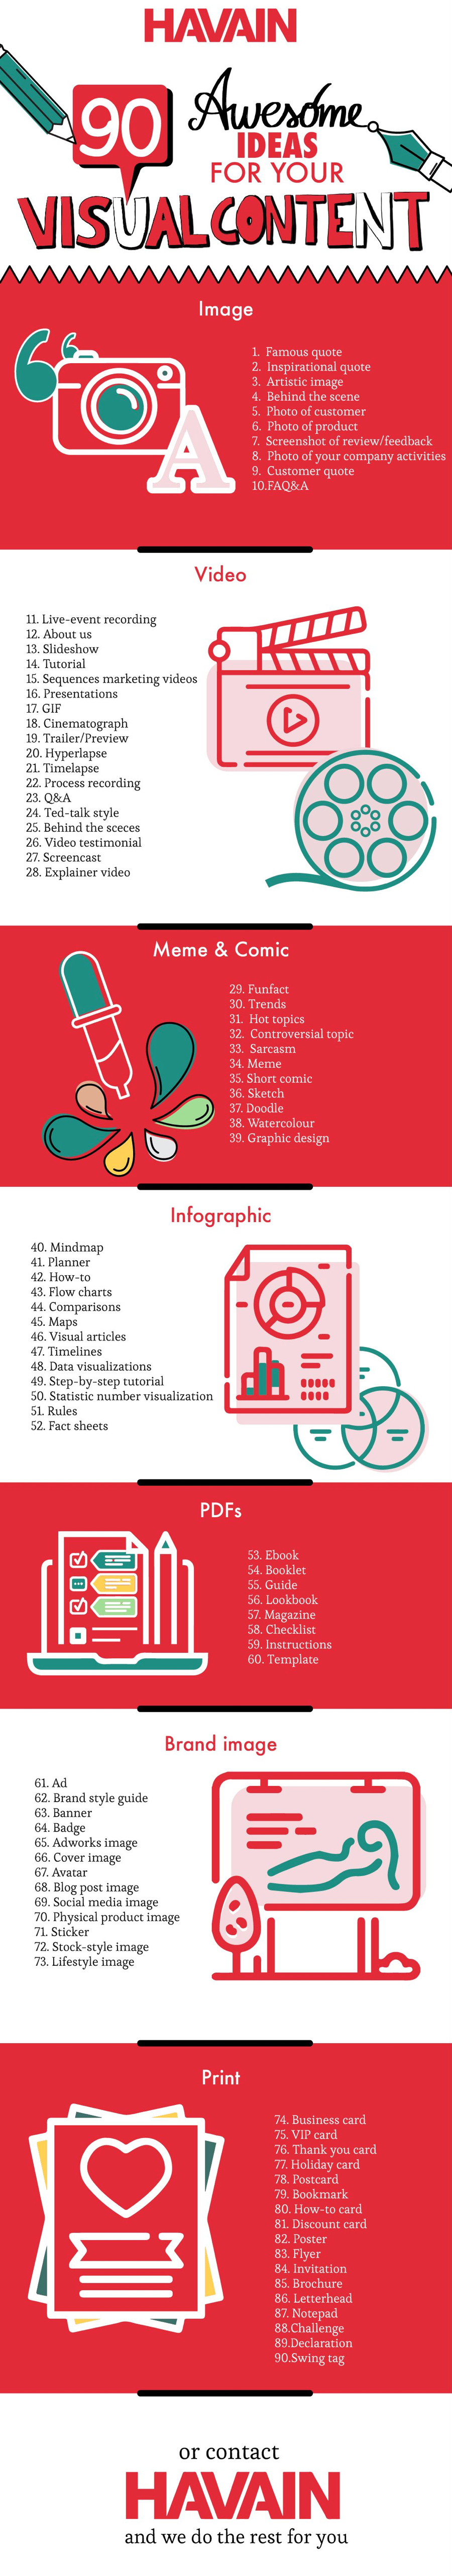 90 awesome ideas for visual content marketing